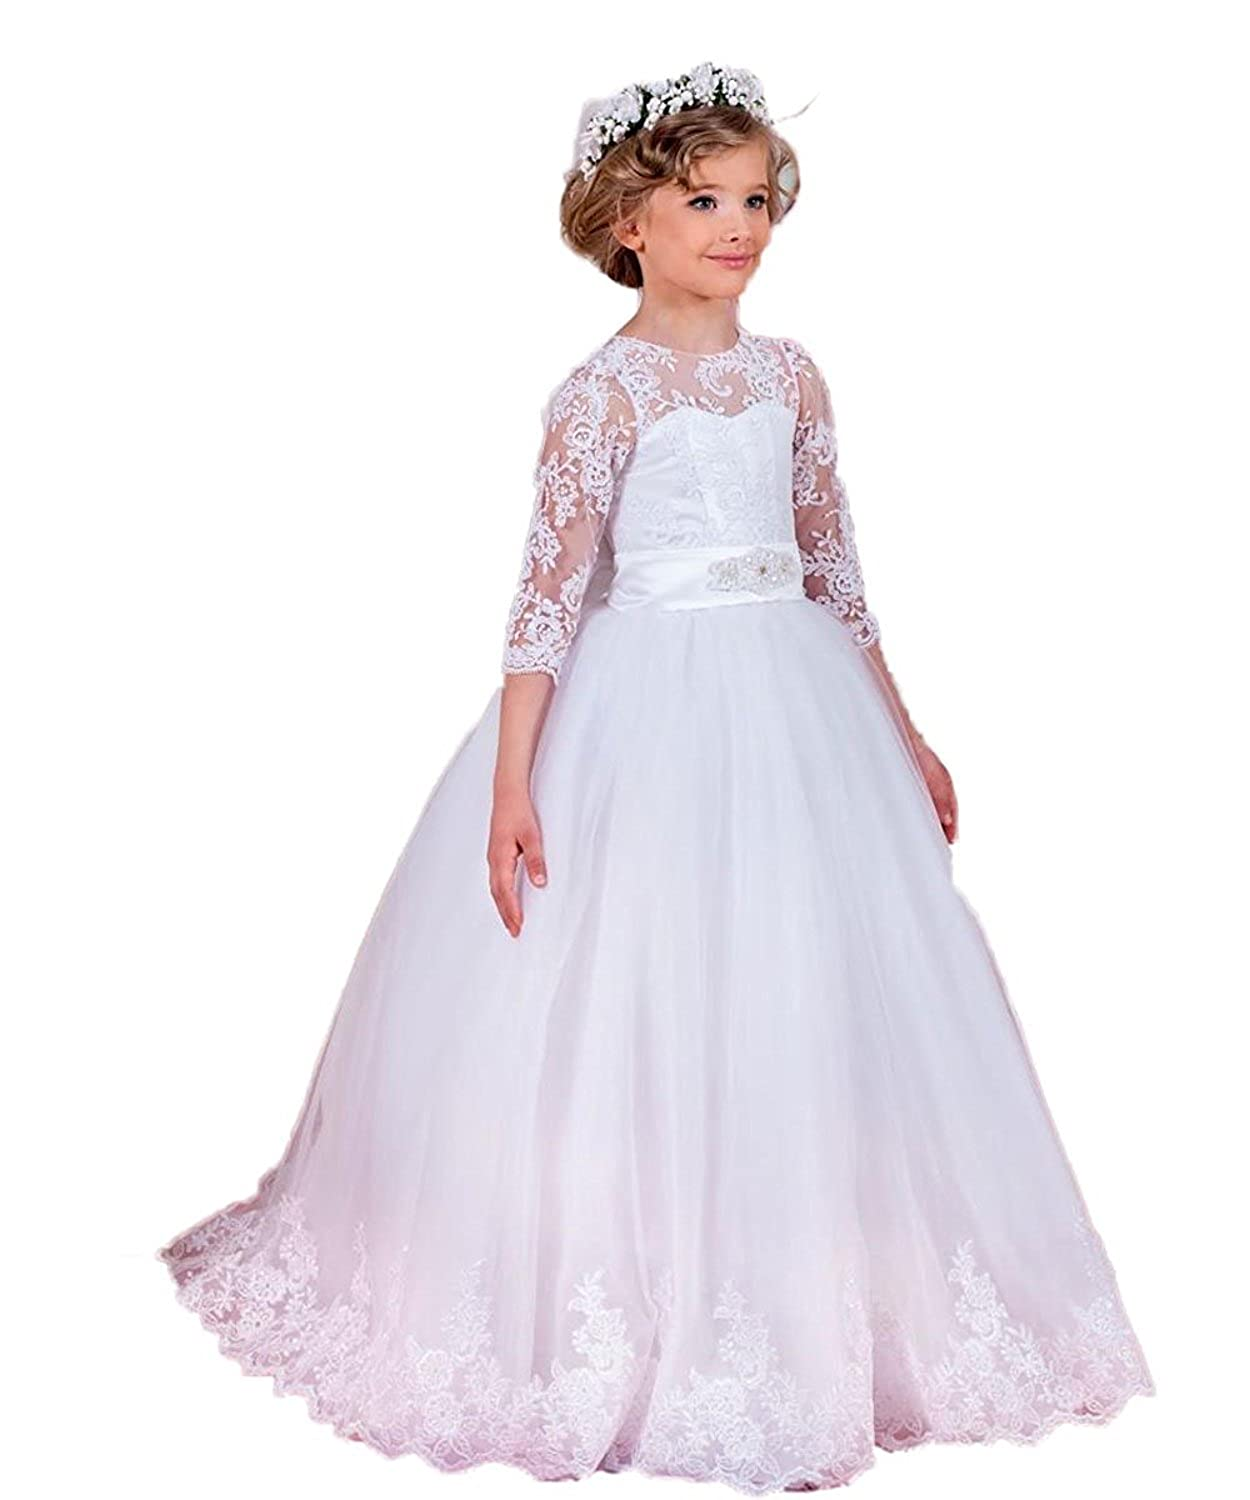 Blanc environ age 5 CoCogirls - Robe - Boule - Fille